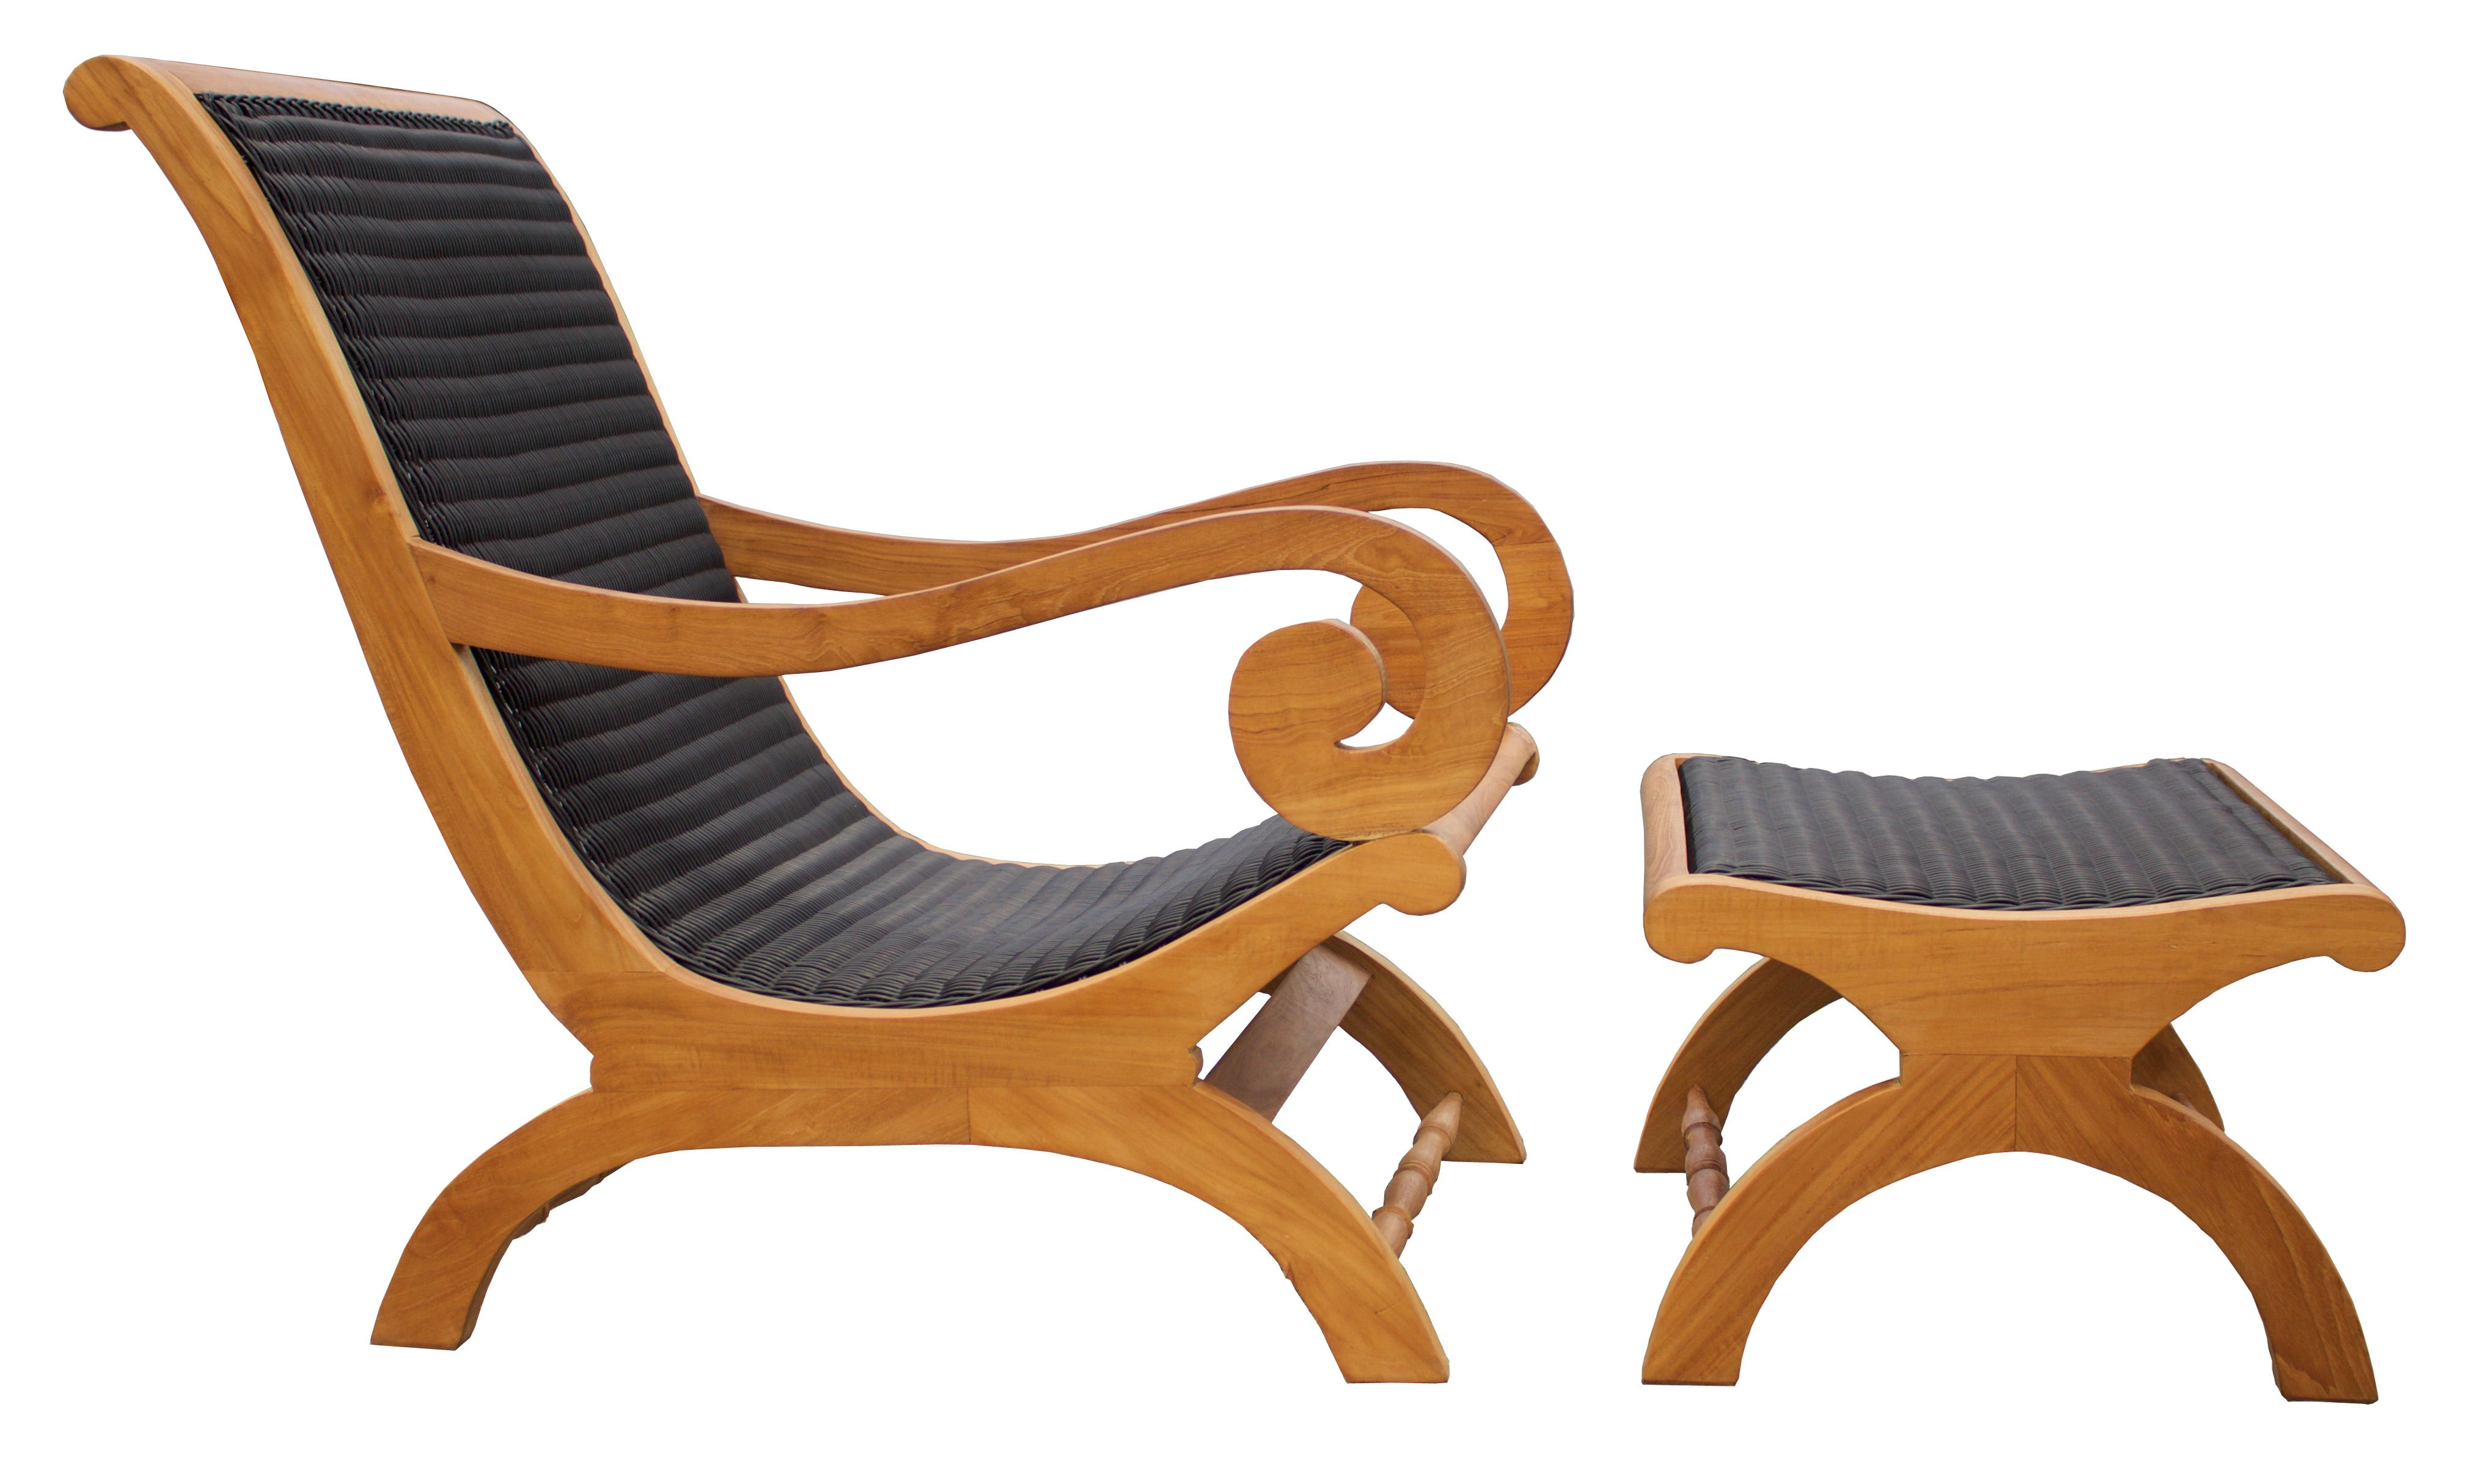 chic teak furniture. Kenya Lazy Chair Incl. Footstool By Chic Teak Only $726.18 Furniture